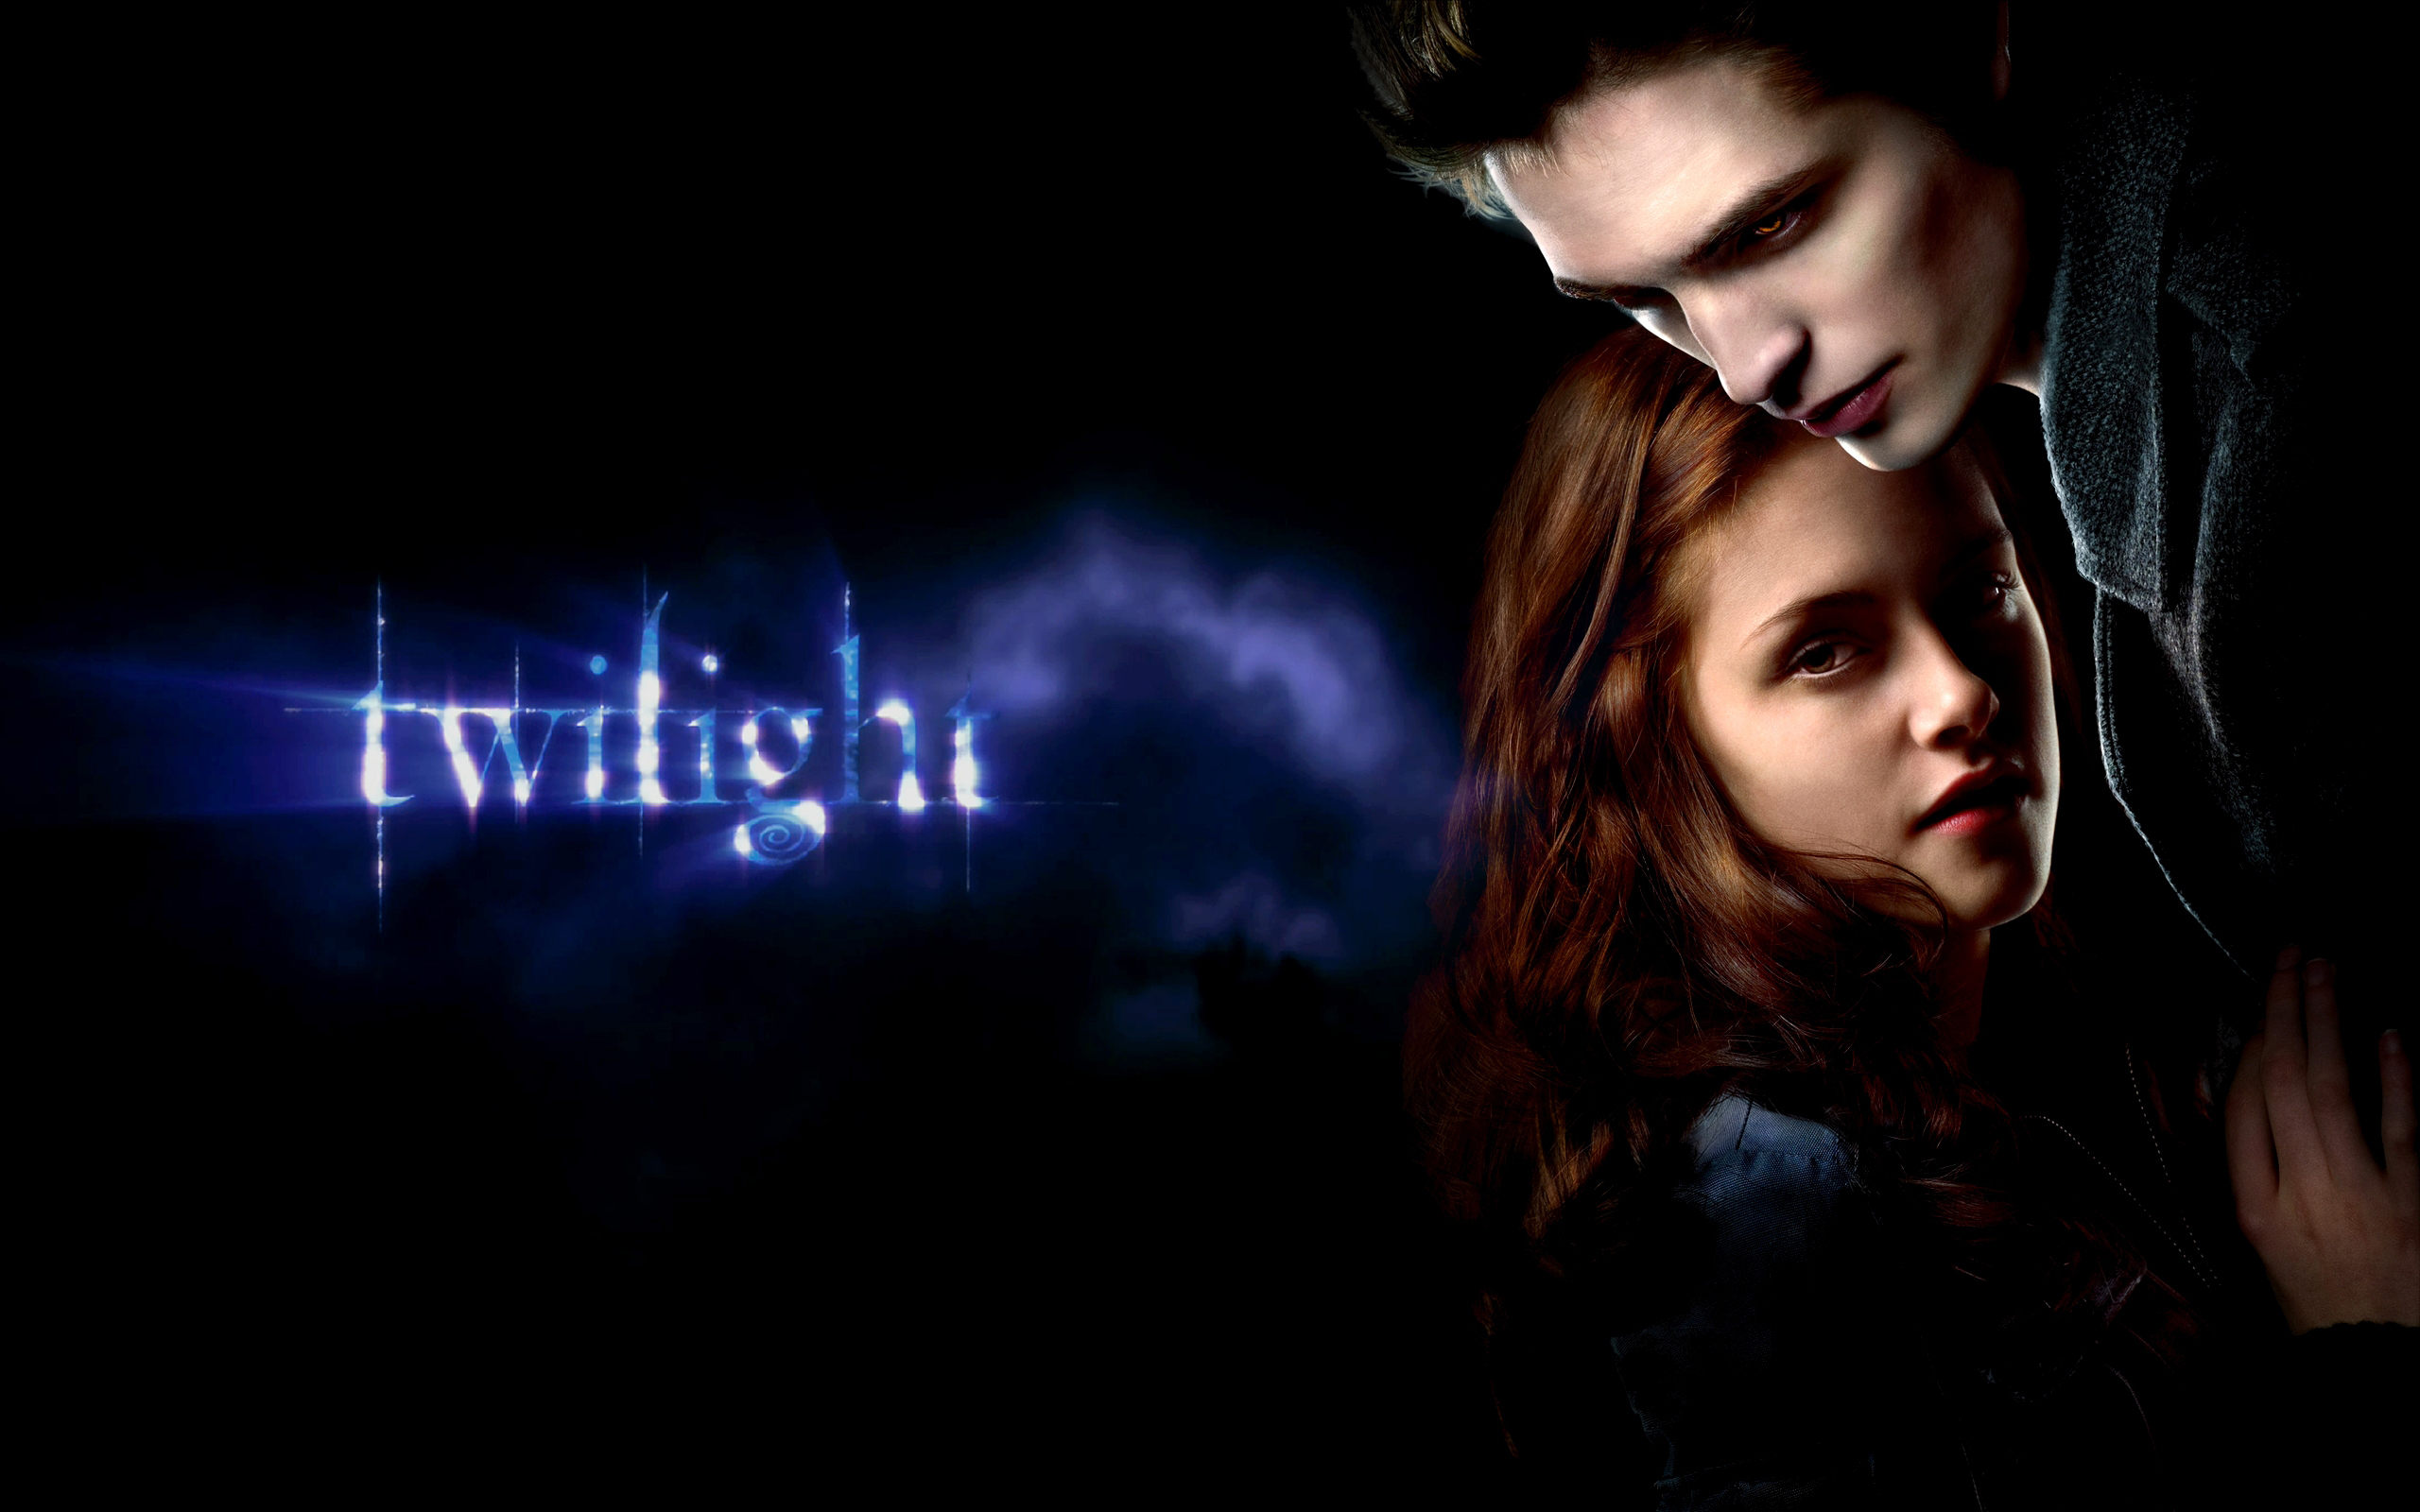 What Twilight Guy Is Fit For You? (Girls Only